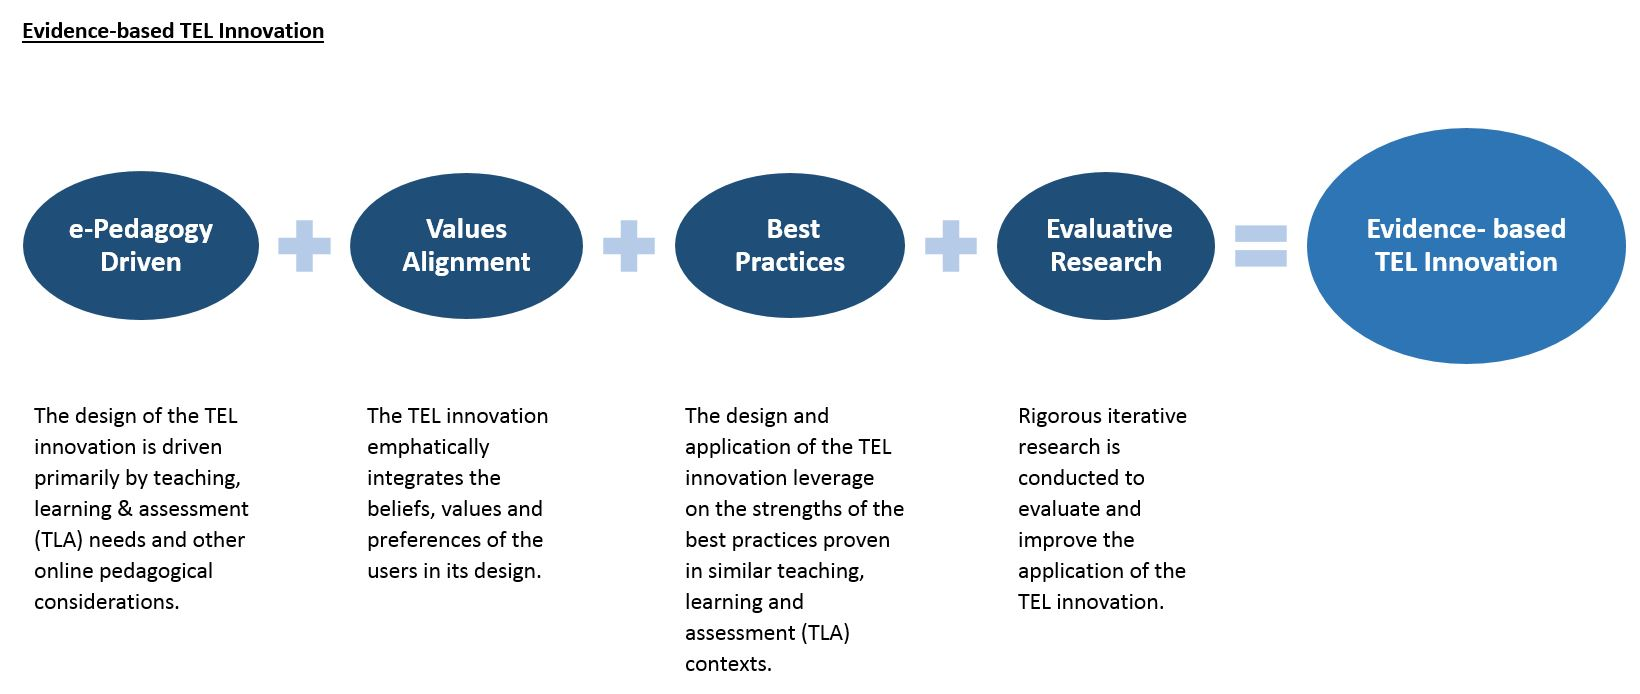 e-Pedagogy Driven, Values Alignment, Best Practices and Evaluative Research make up Evidence-based TEL Innovation.